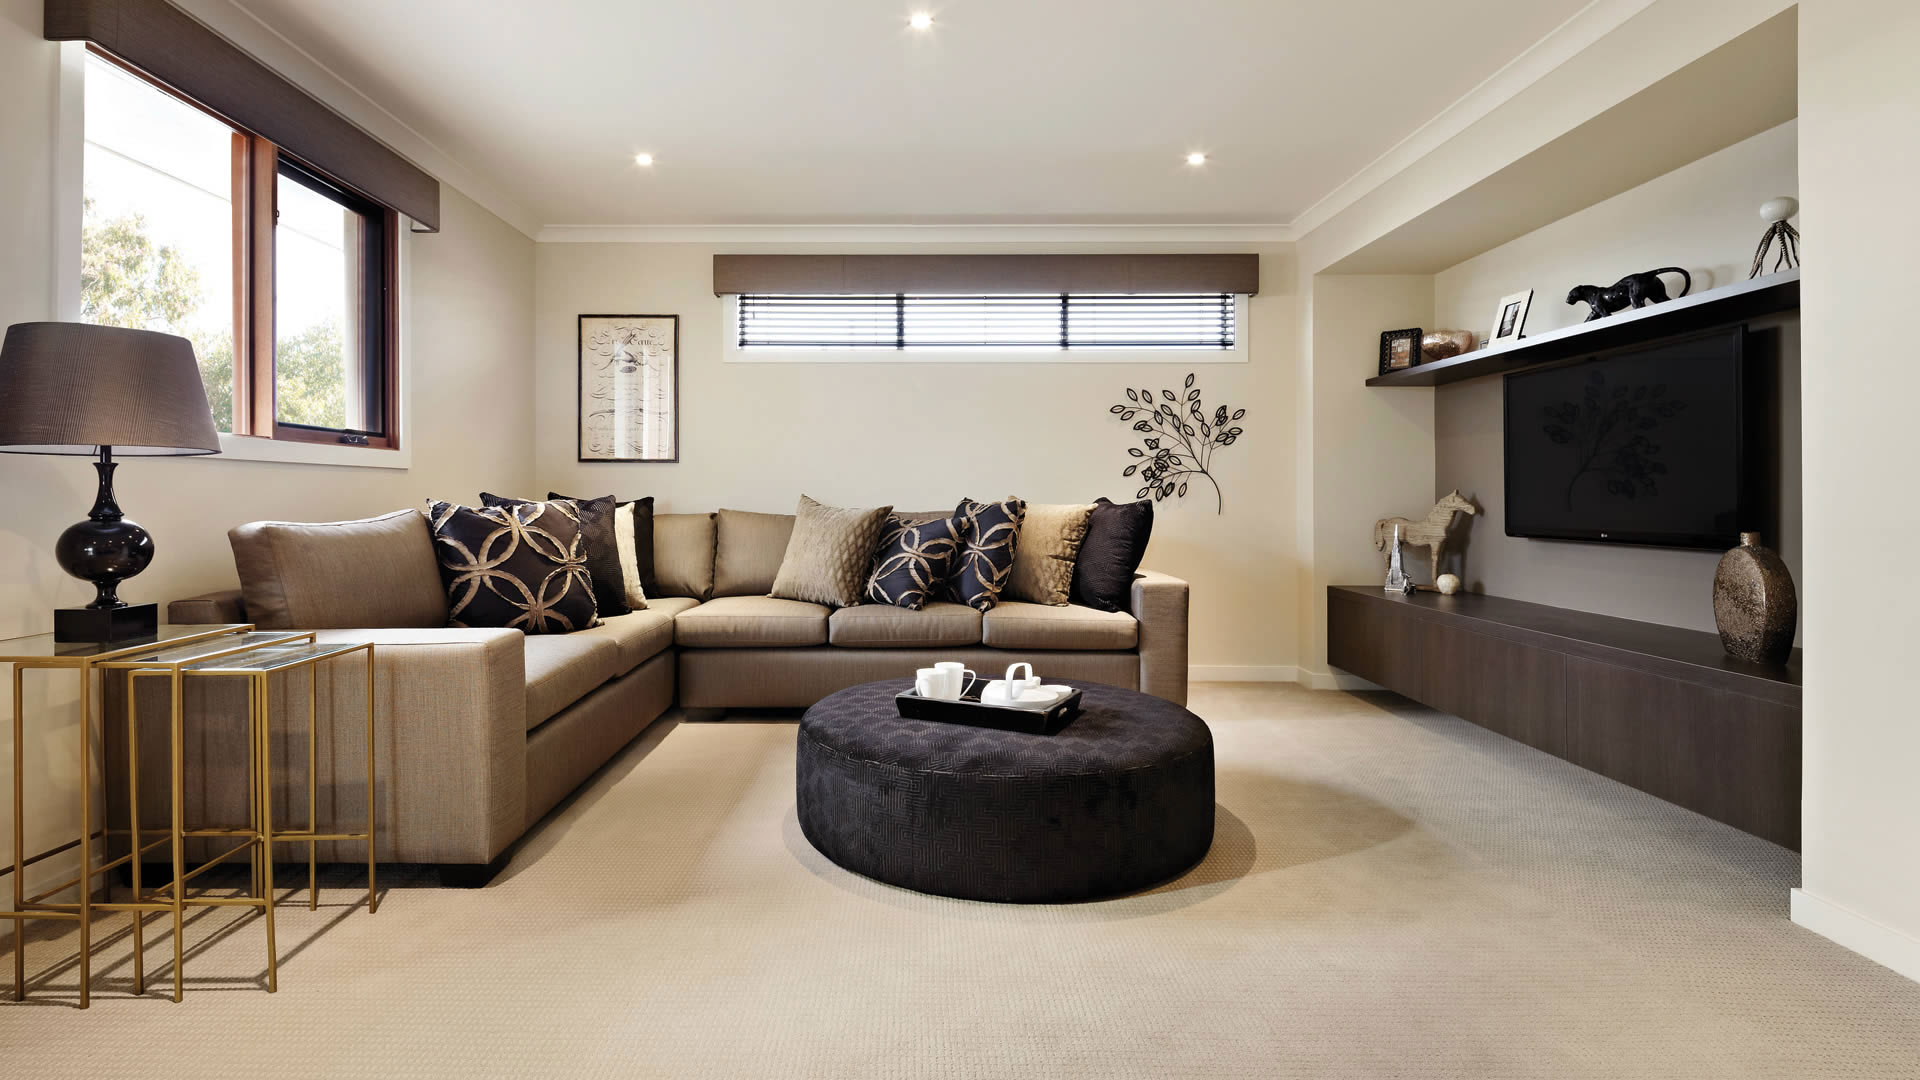 Brown Sofa 59 Photos Models Of Light And Dark Brown Color In Beige Brown Tones From Kozhzam